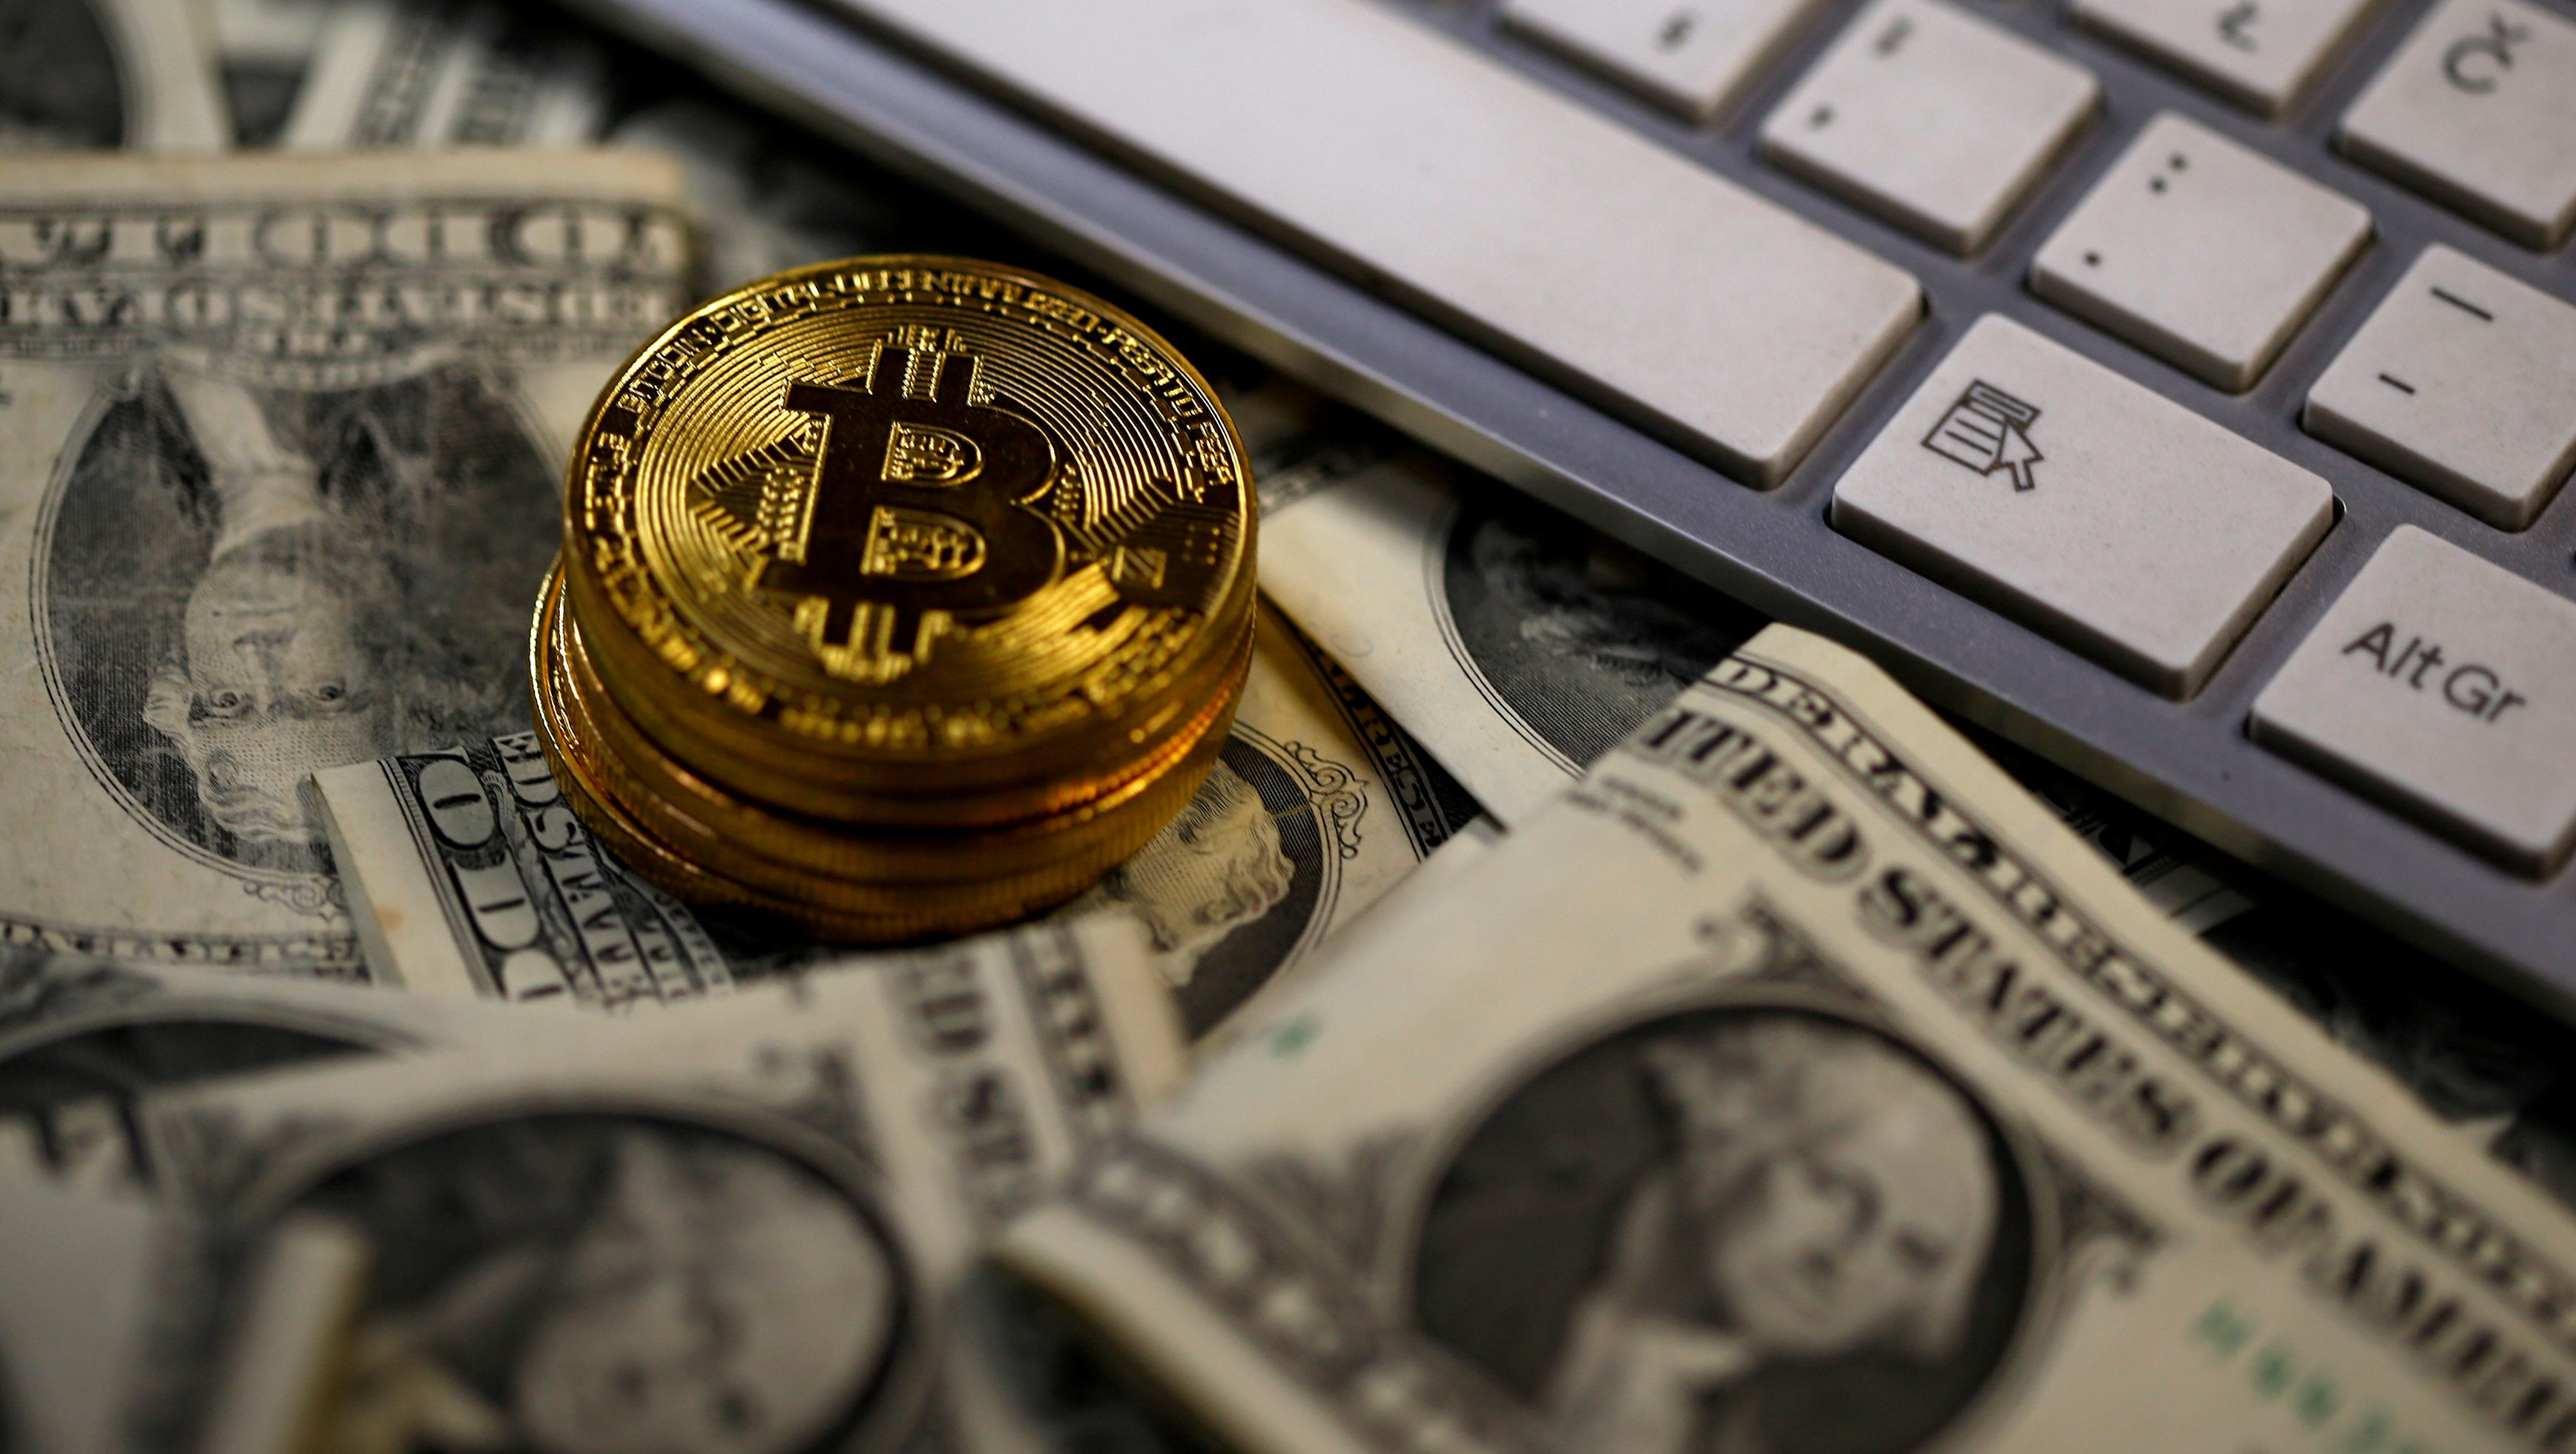 FILE PHOTO:   Bitcoin (virtual currency) coins placed on Dollar banknotes, next to computer keyboard, are seen in this illustration picture, November 6, 2017.  REUTERS/Dado Ruvic/Illustration/File Photo - RC1EF9D6BE50